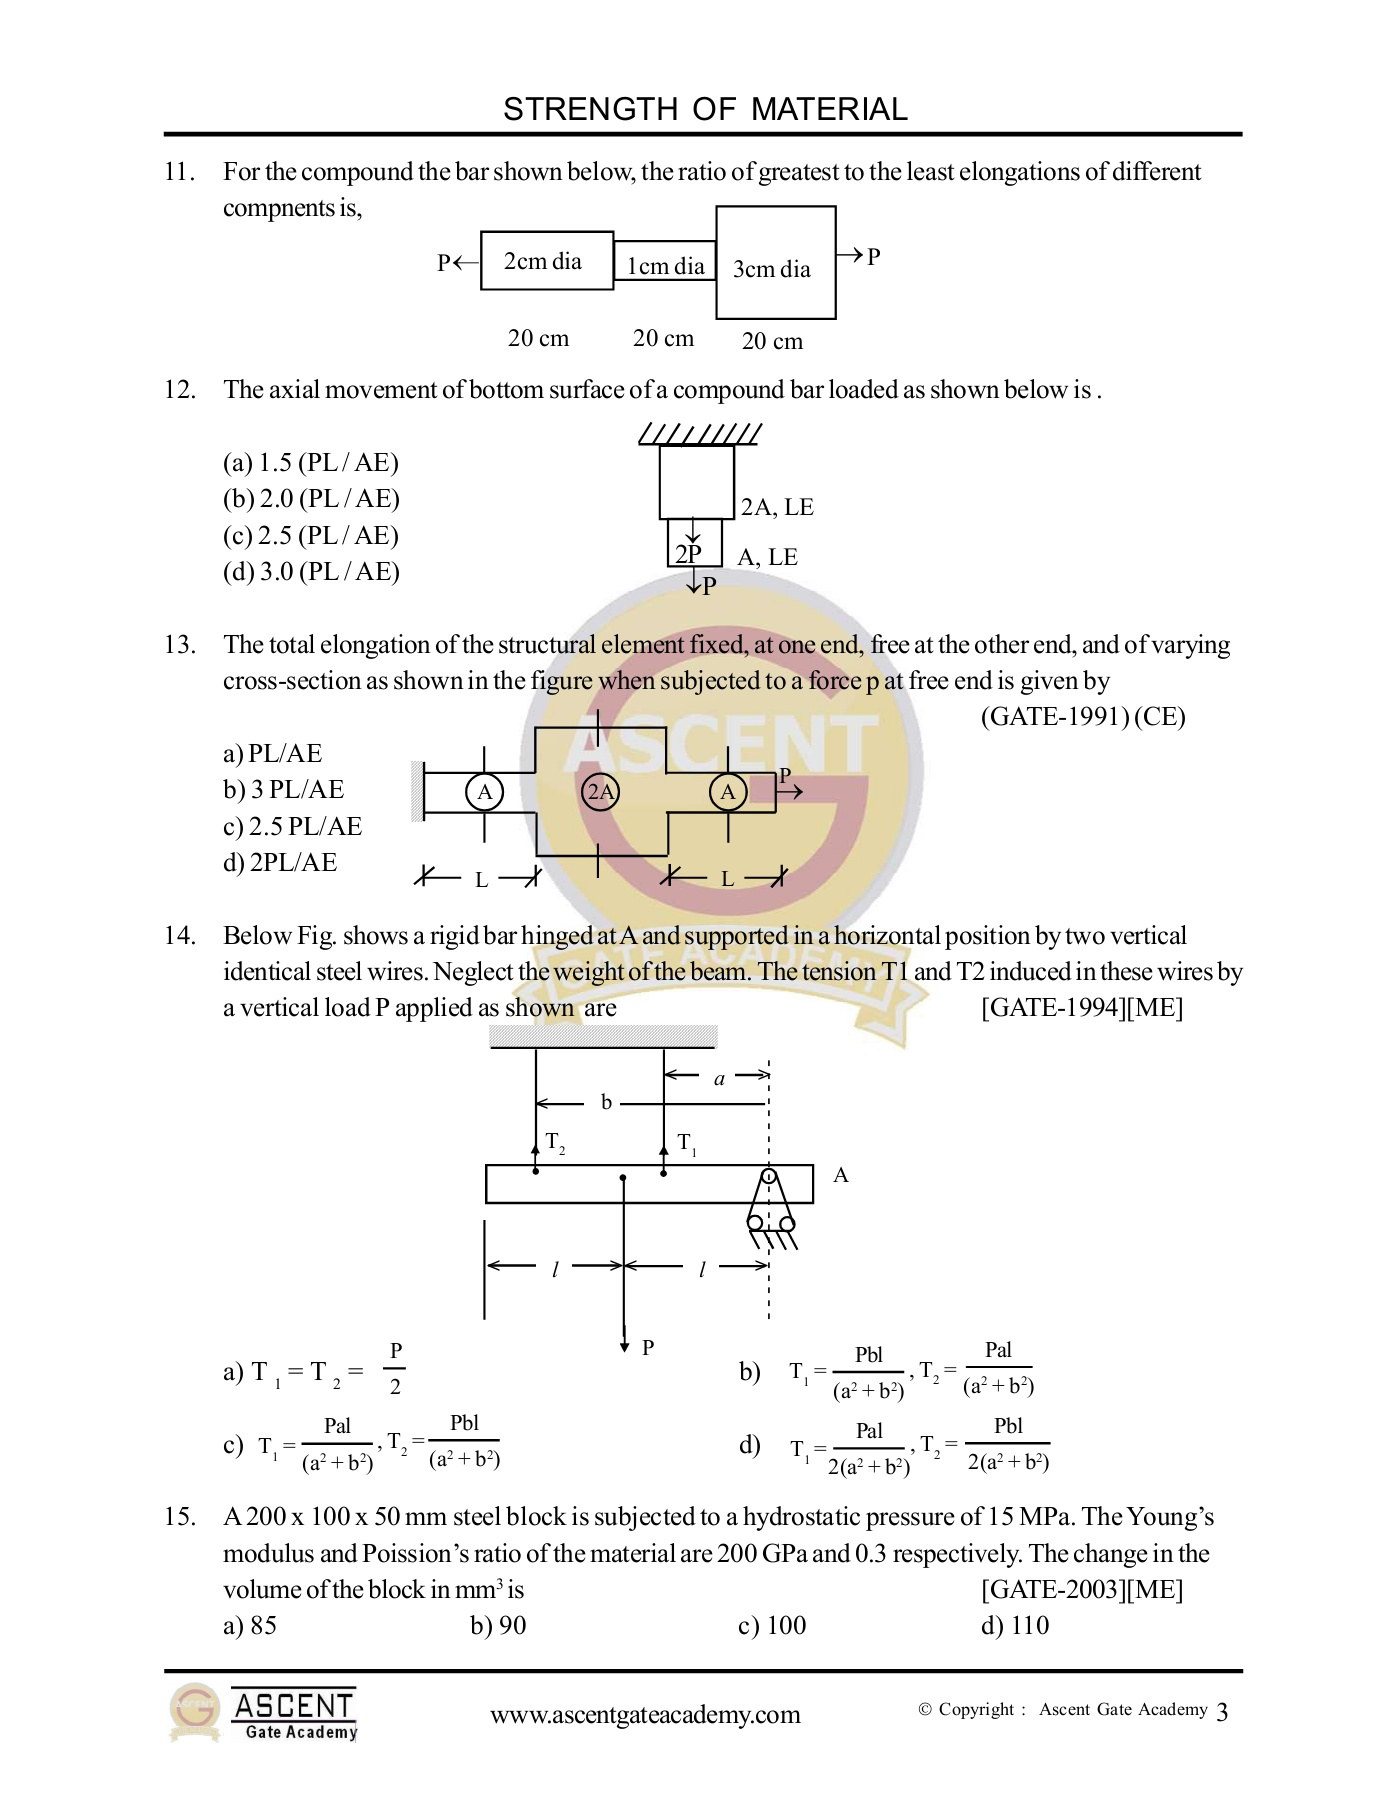 stm objective pages 51 100 text version anyflipFig Wiring Diagram A Cm Page 02 2002 #11